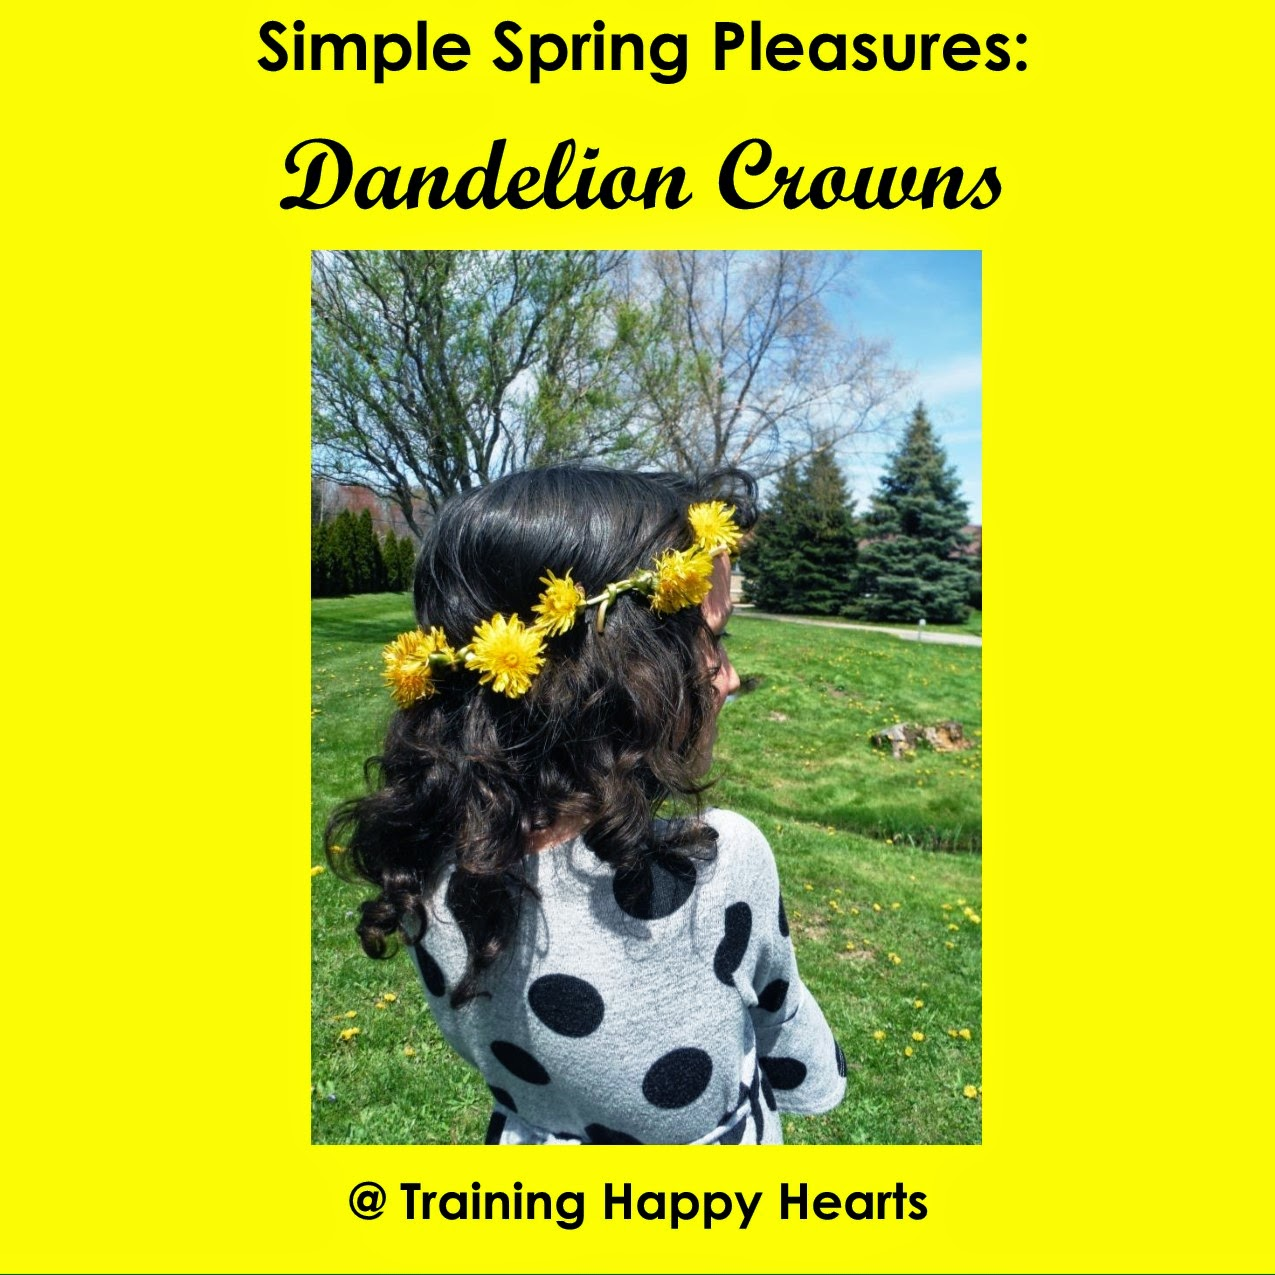 http://traininghappyhearts.blogspot.com/2015/05/what-simple-spring-fun-can-you-enjoy.html